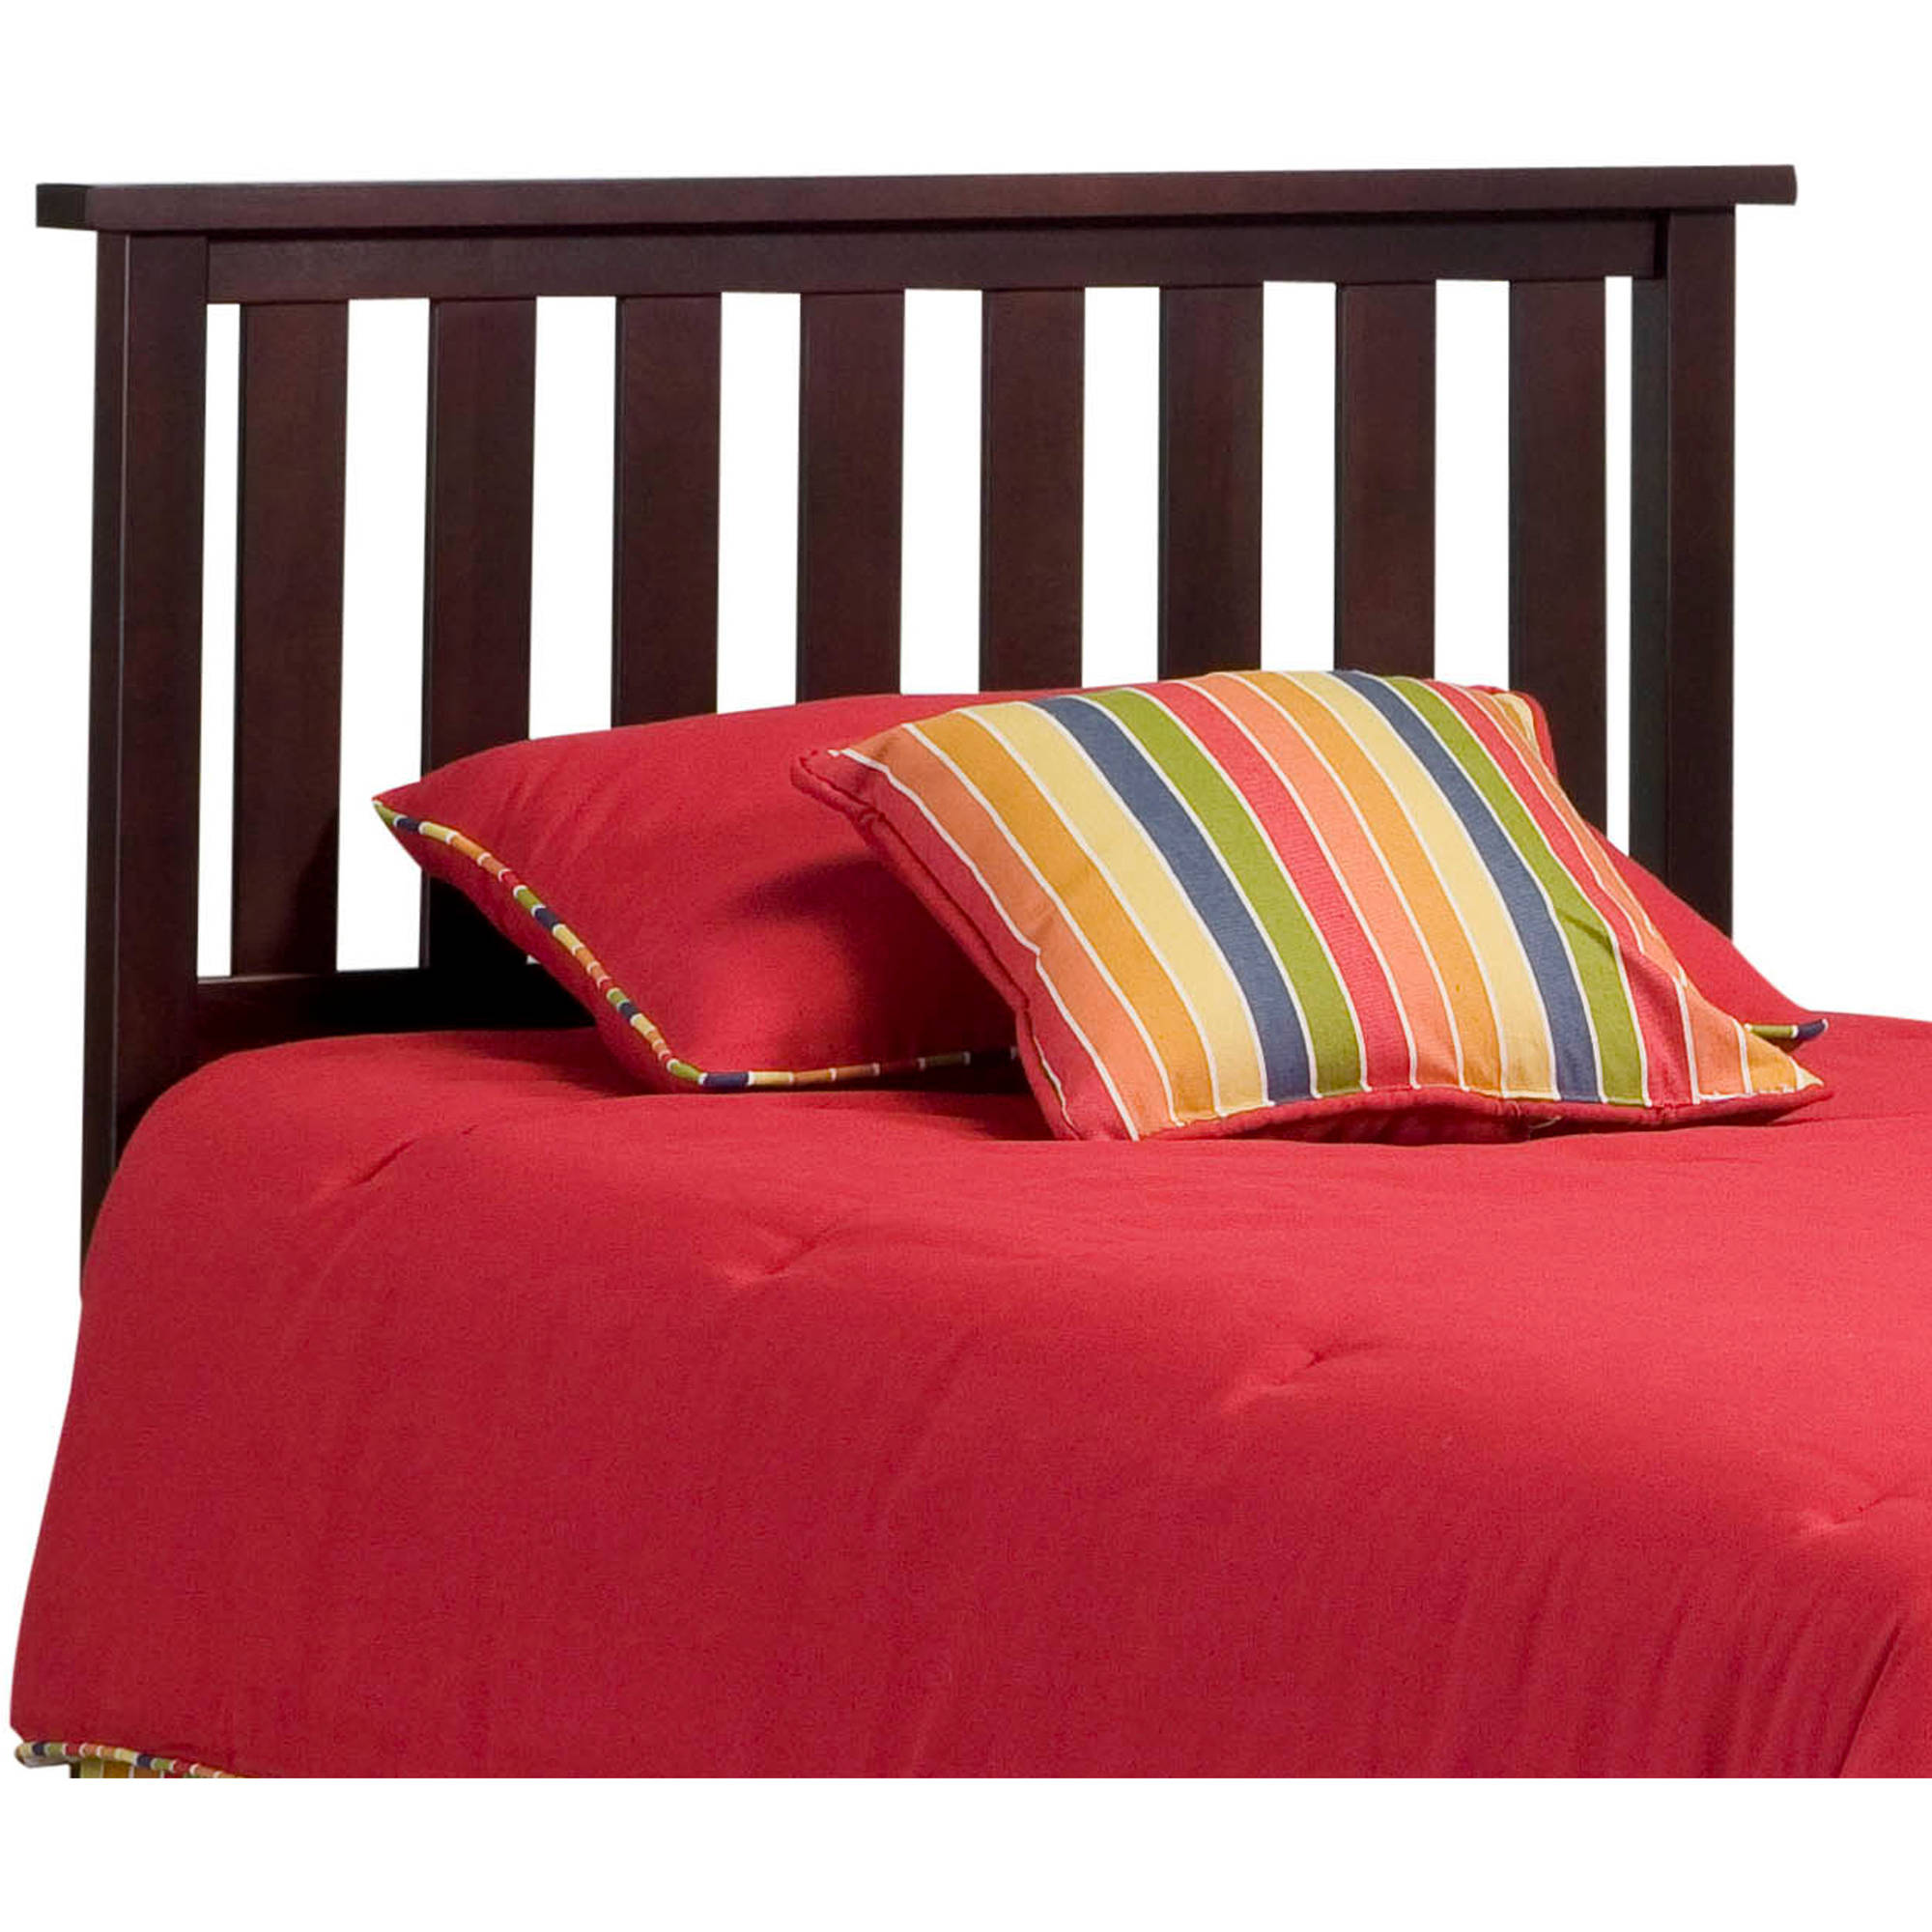 Fashion Bed Group by Leggett & Platt Belmont Headboard, Multiple Sizes & Colors